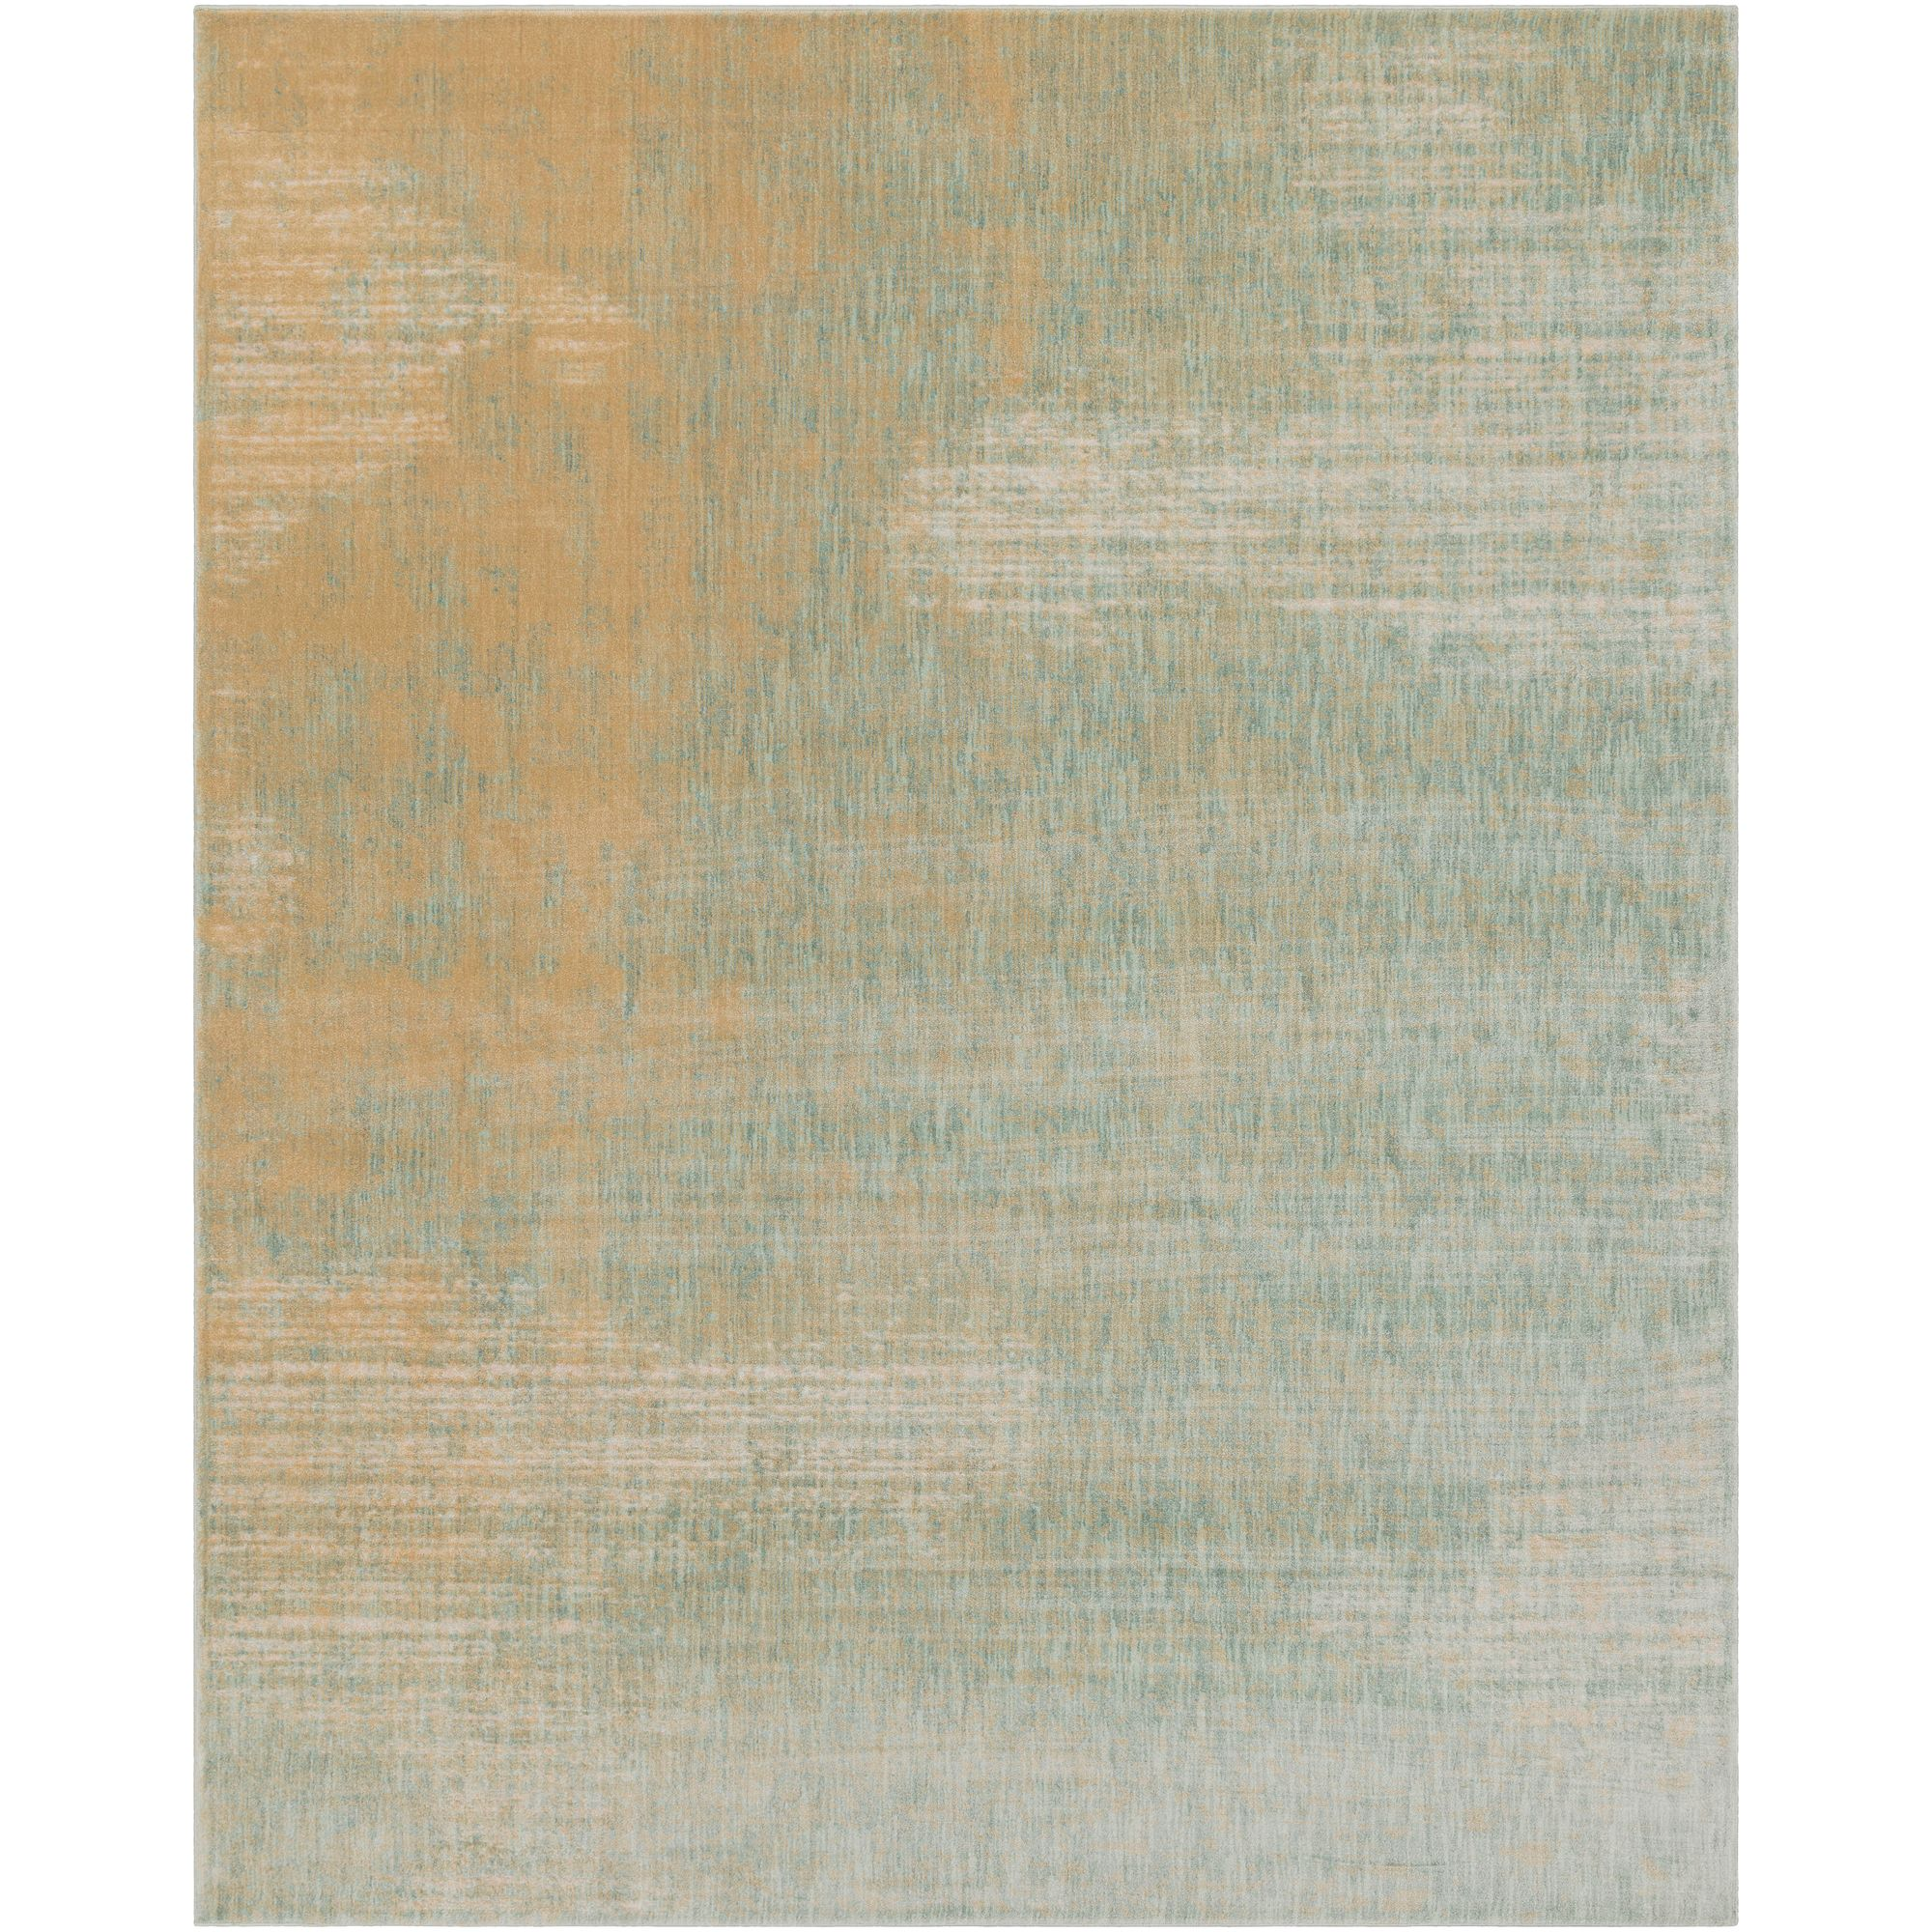 "Art of Knot Primrose 7'10"" x 9'10"" Rectangular Area Rug"